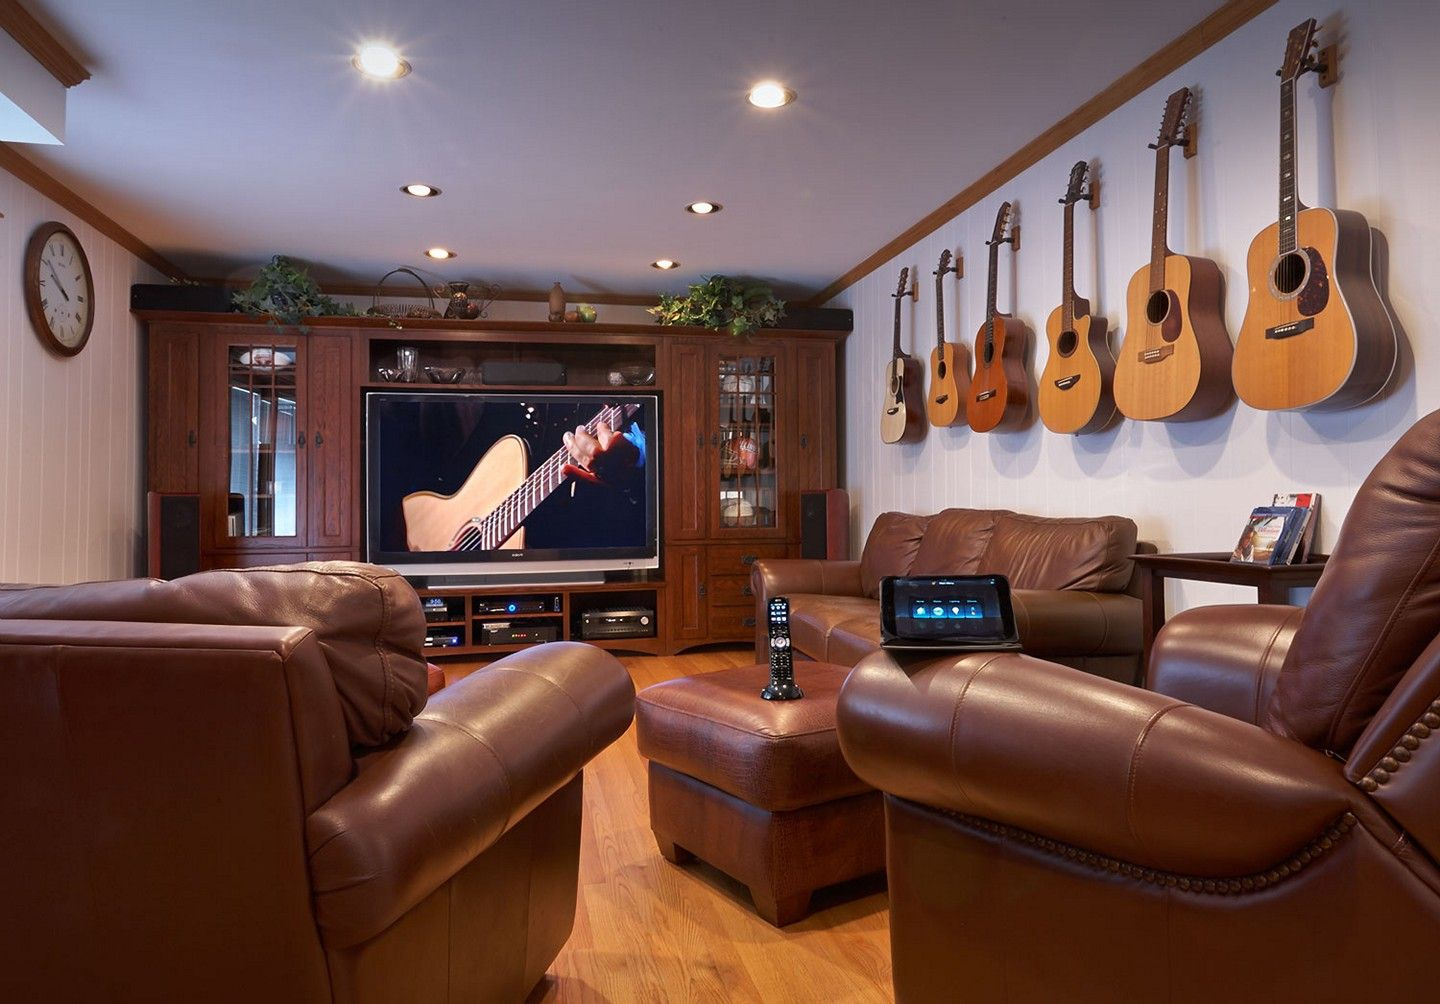 Best Photo Images And Pictures About Movie Room Ideas Diy Small Bat Garage